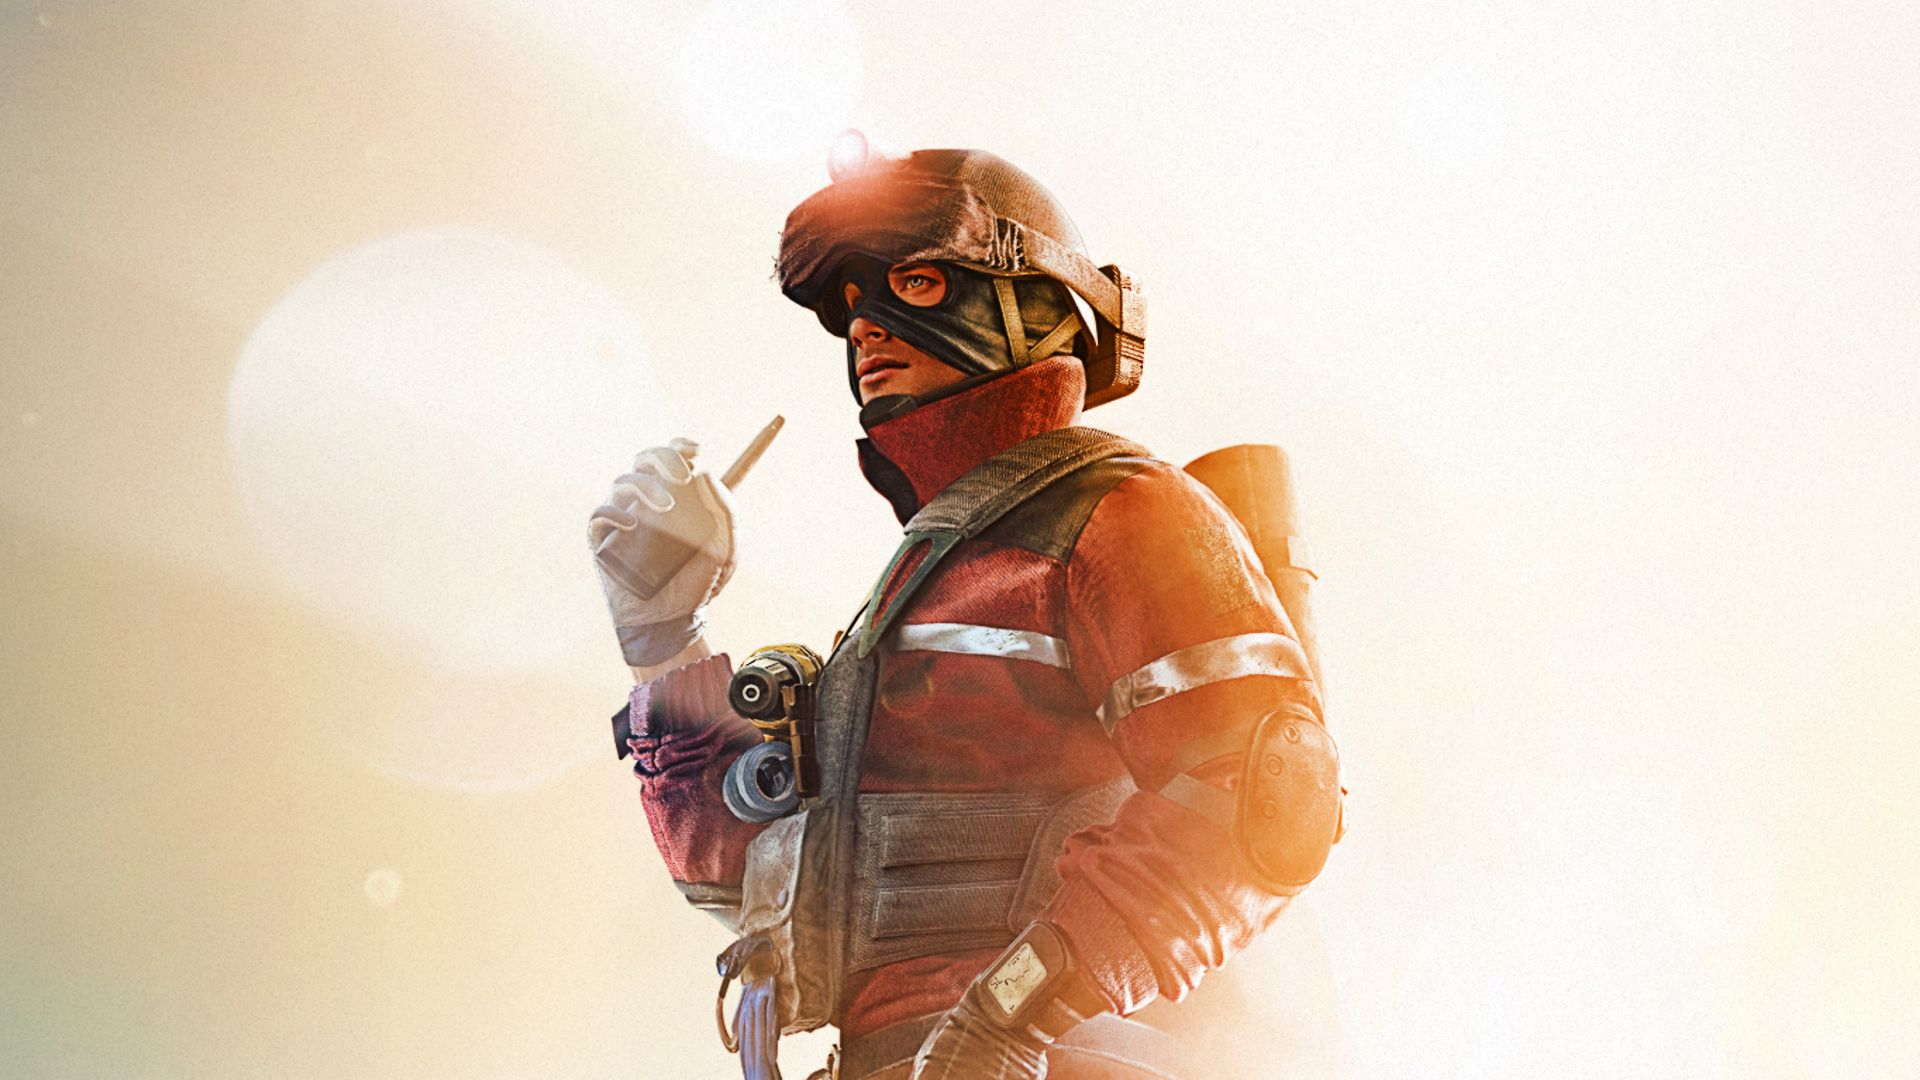 Rainbow Six Siege is free to try this weekend